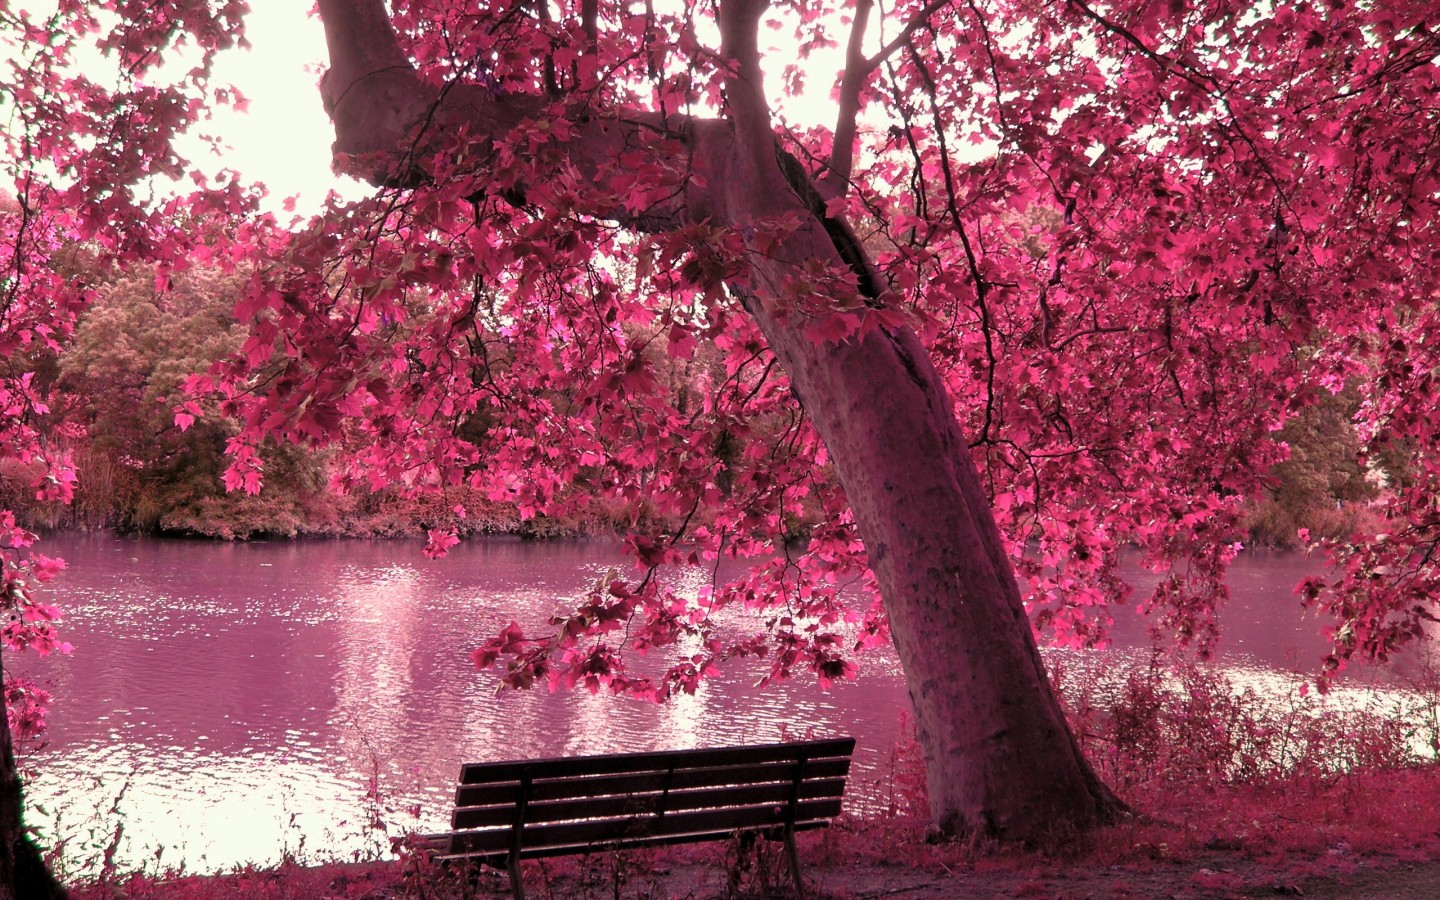 Spring Season Cherry Blossom Wallpaper Download wallpapers page 1440x900